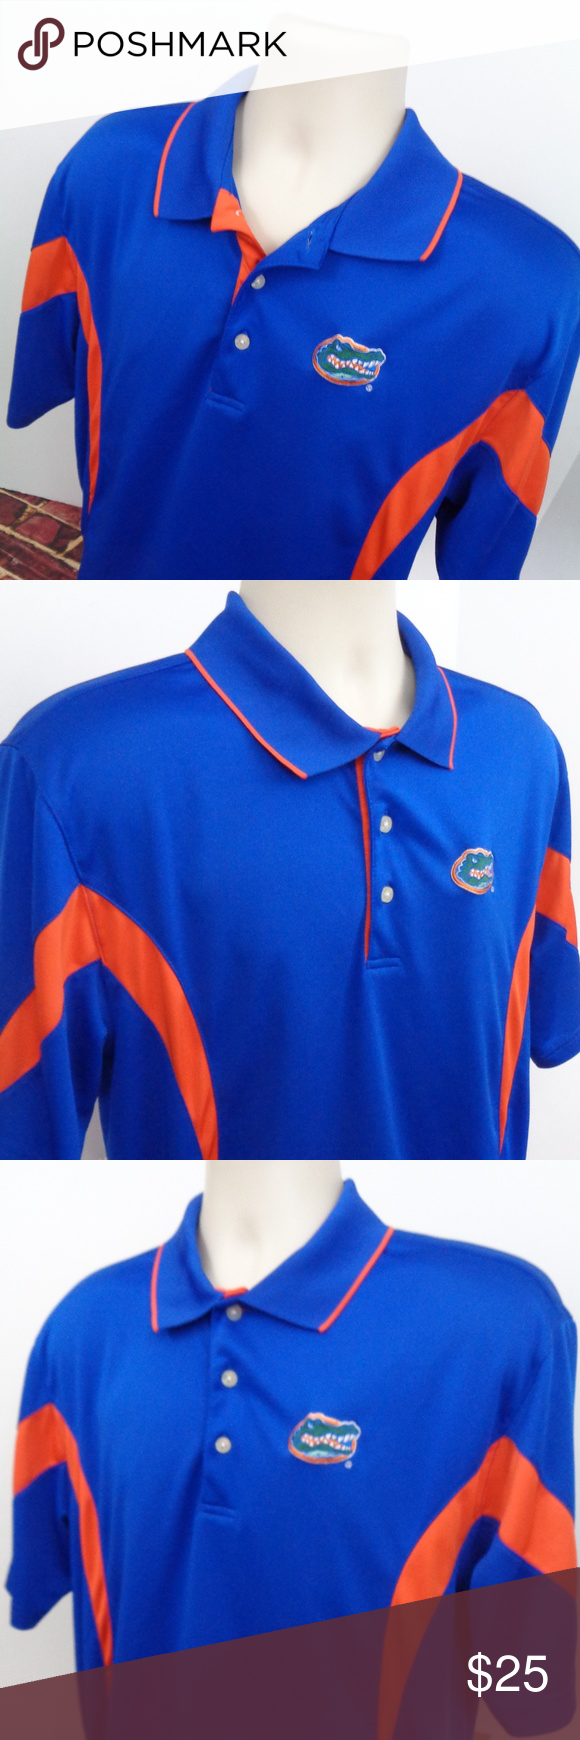 University Of Florida Gators Golf Shirt Size Large This Is A Mens